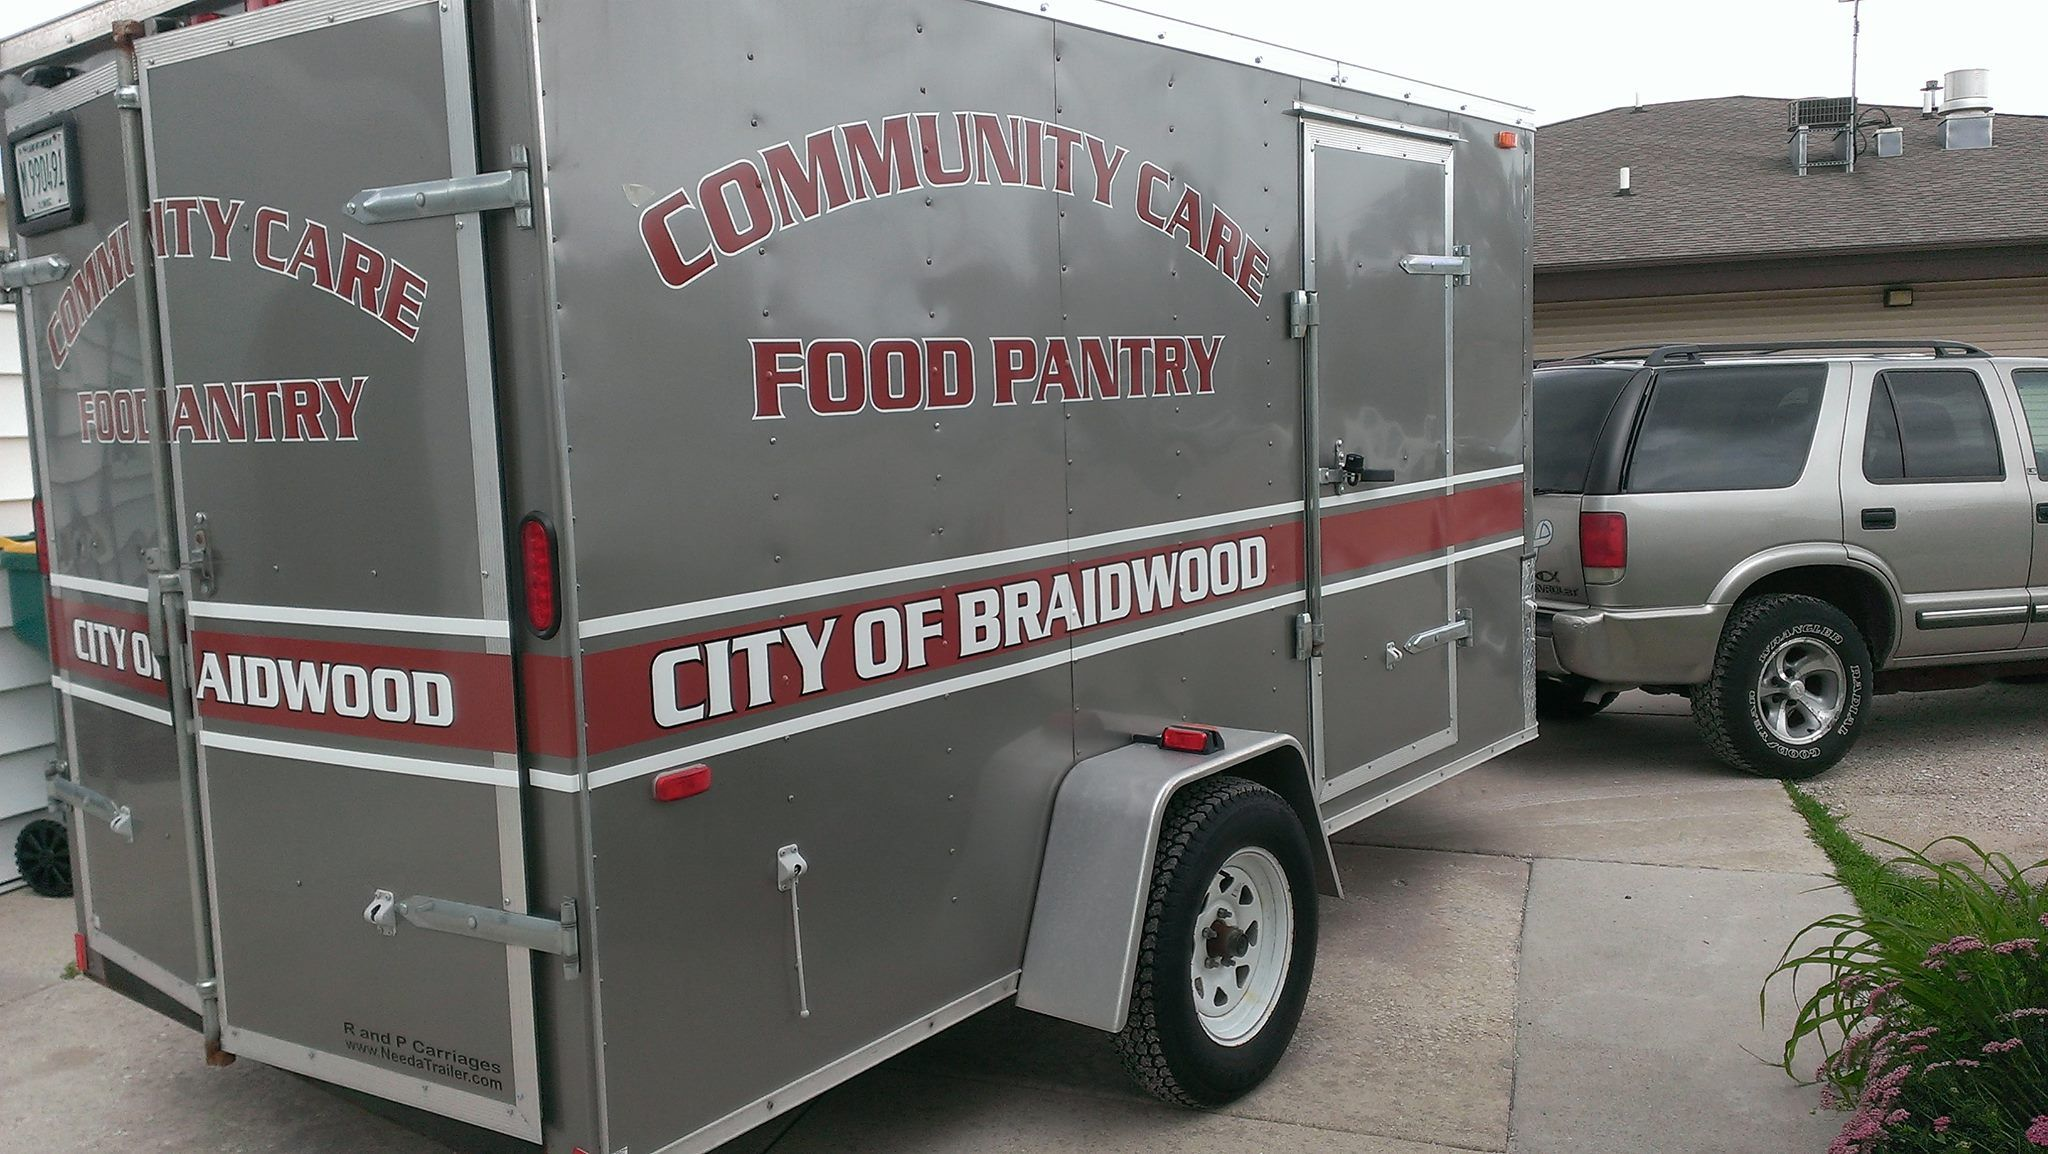 Community Care Center - Braidwood